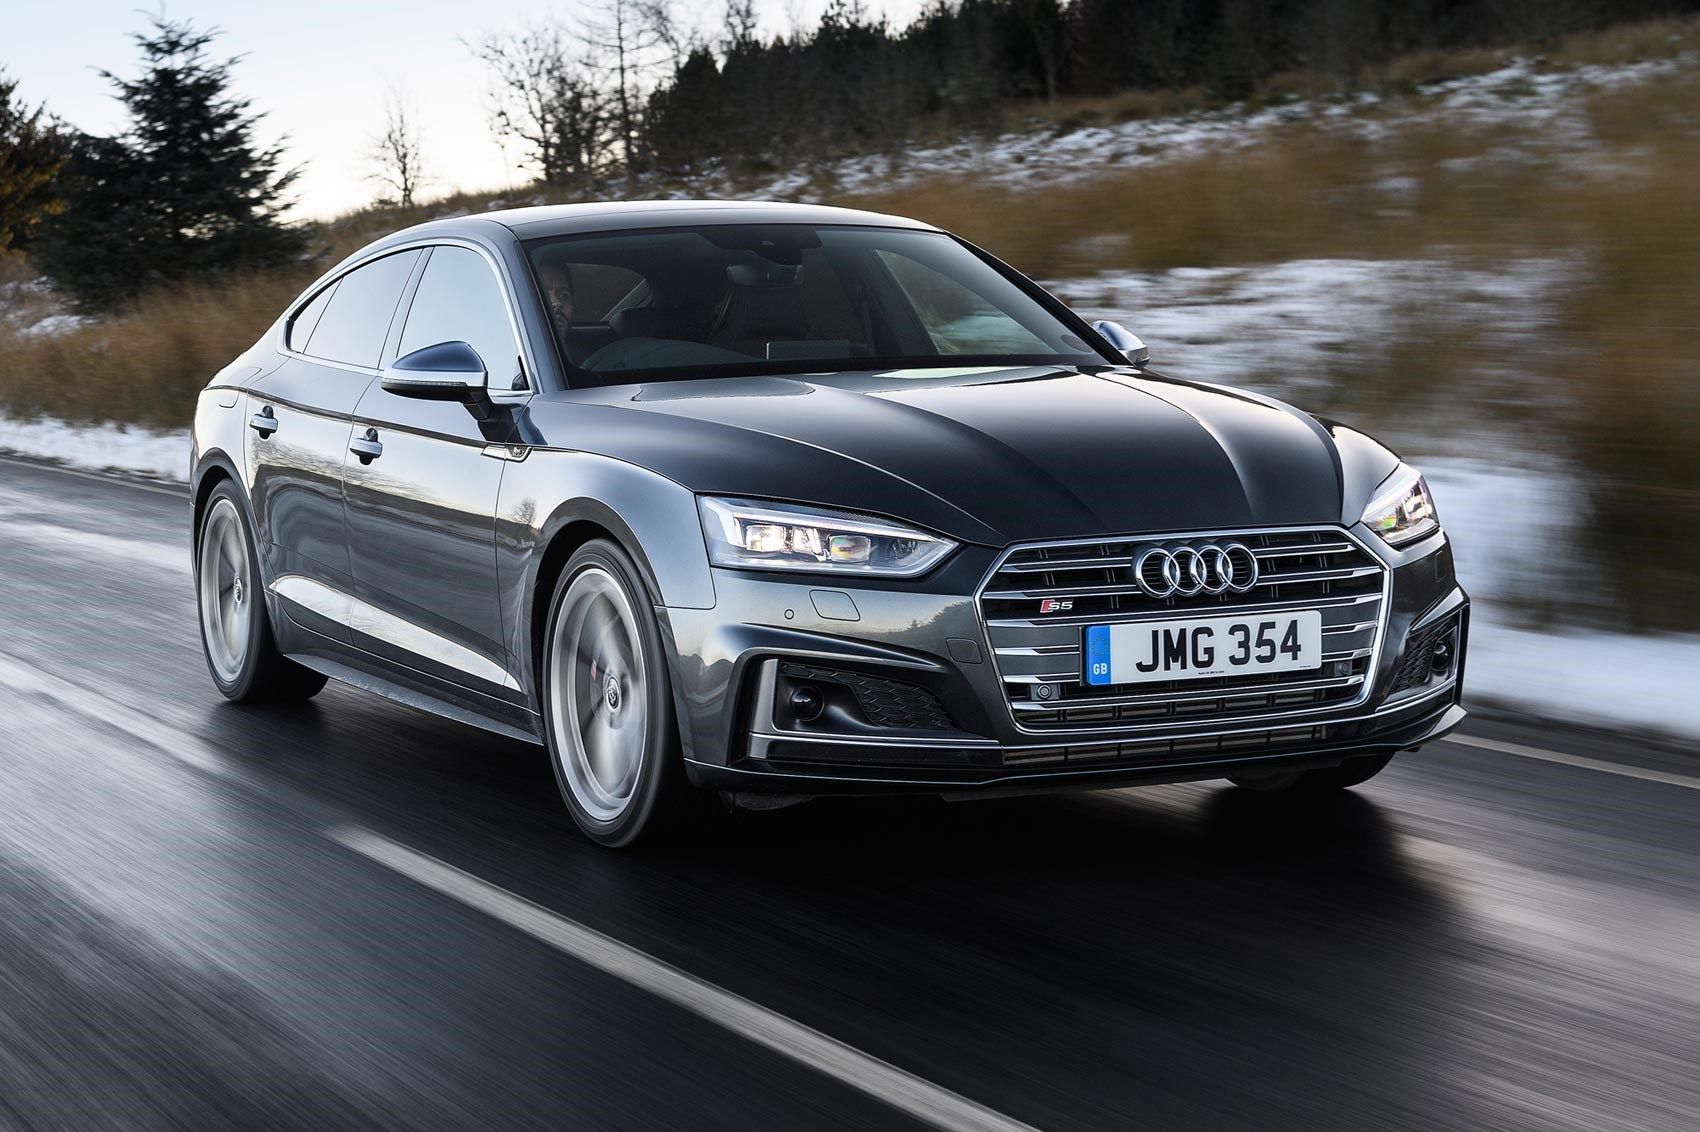 Audi S5 Sportback (2017) review: still worthy of the S badge? | CAR